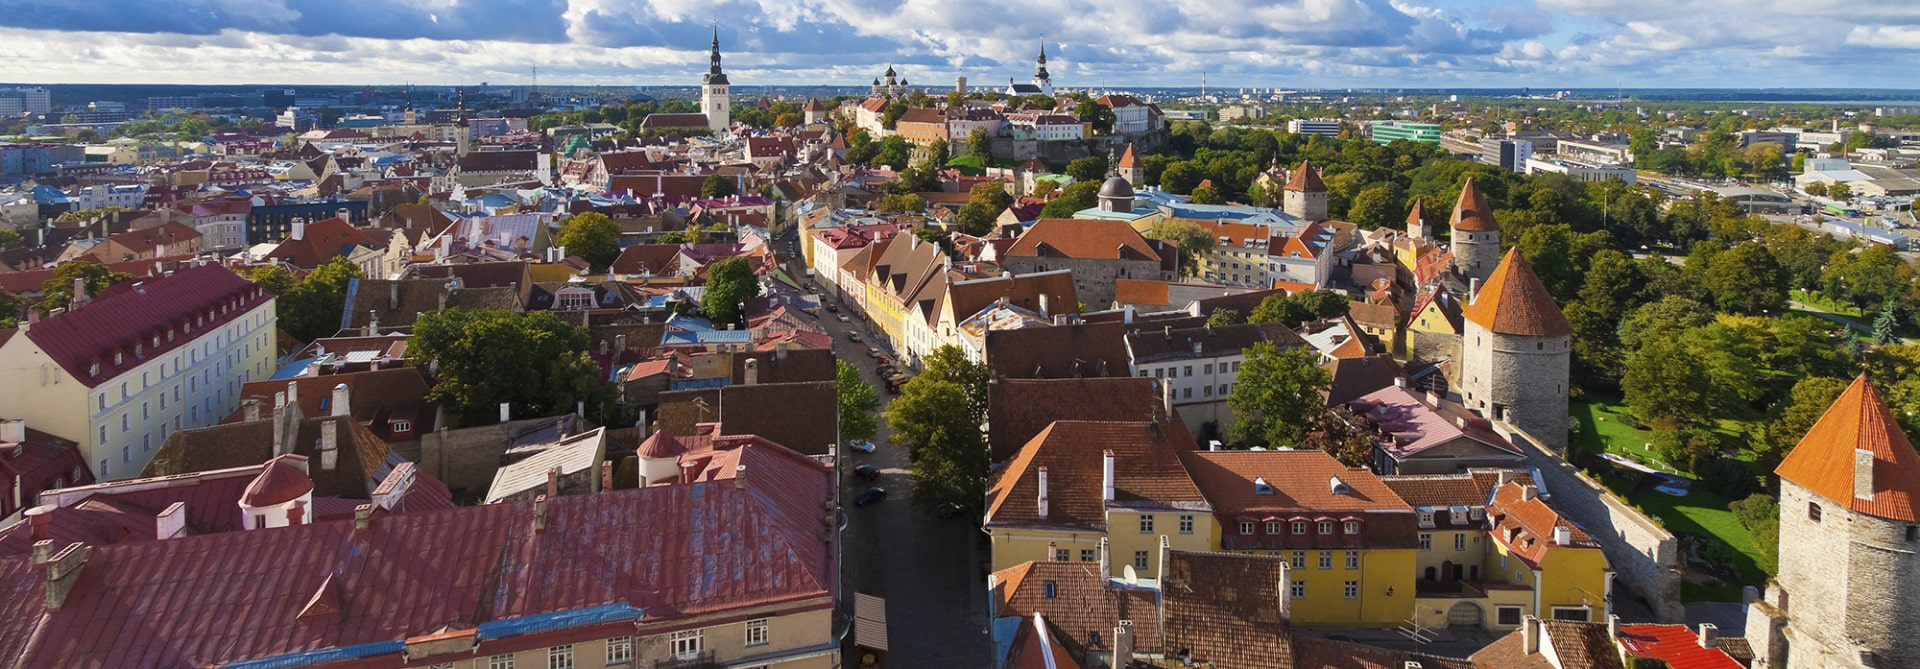 Panorama of Tallinn, Estonia Exeter